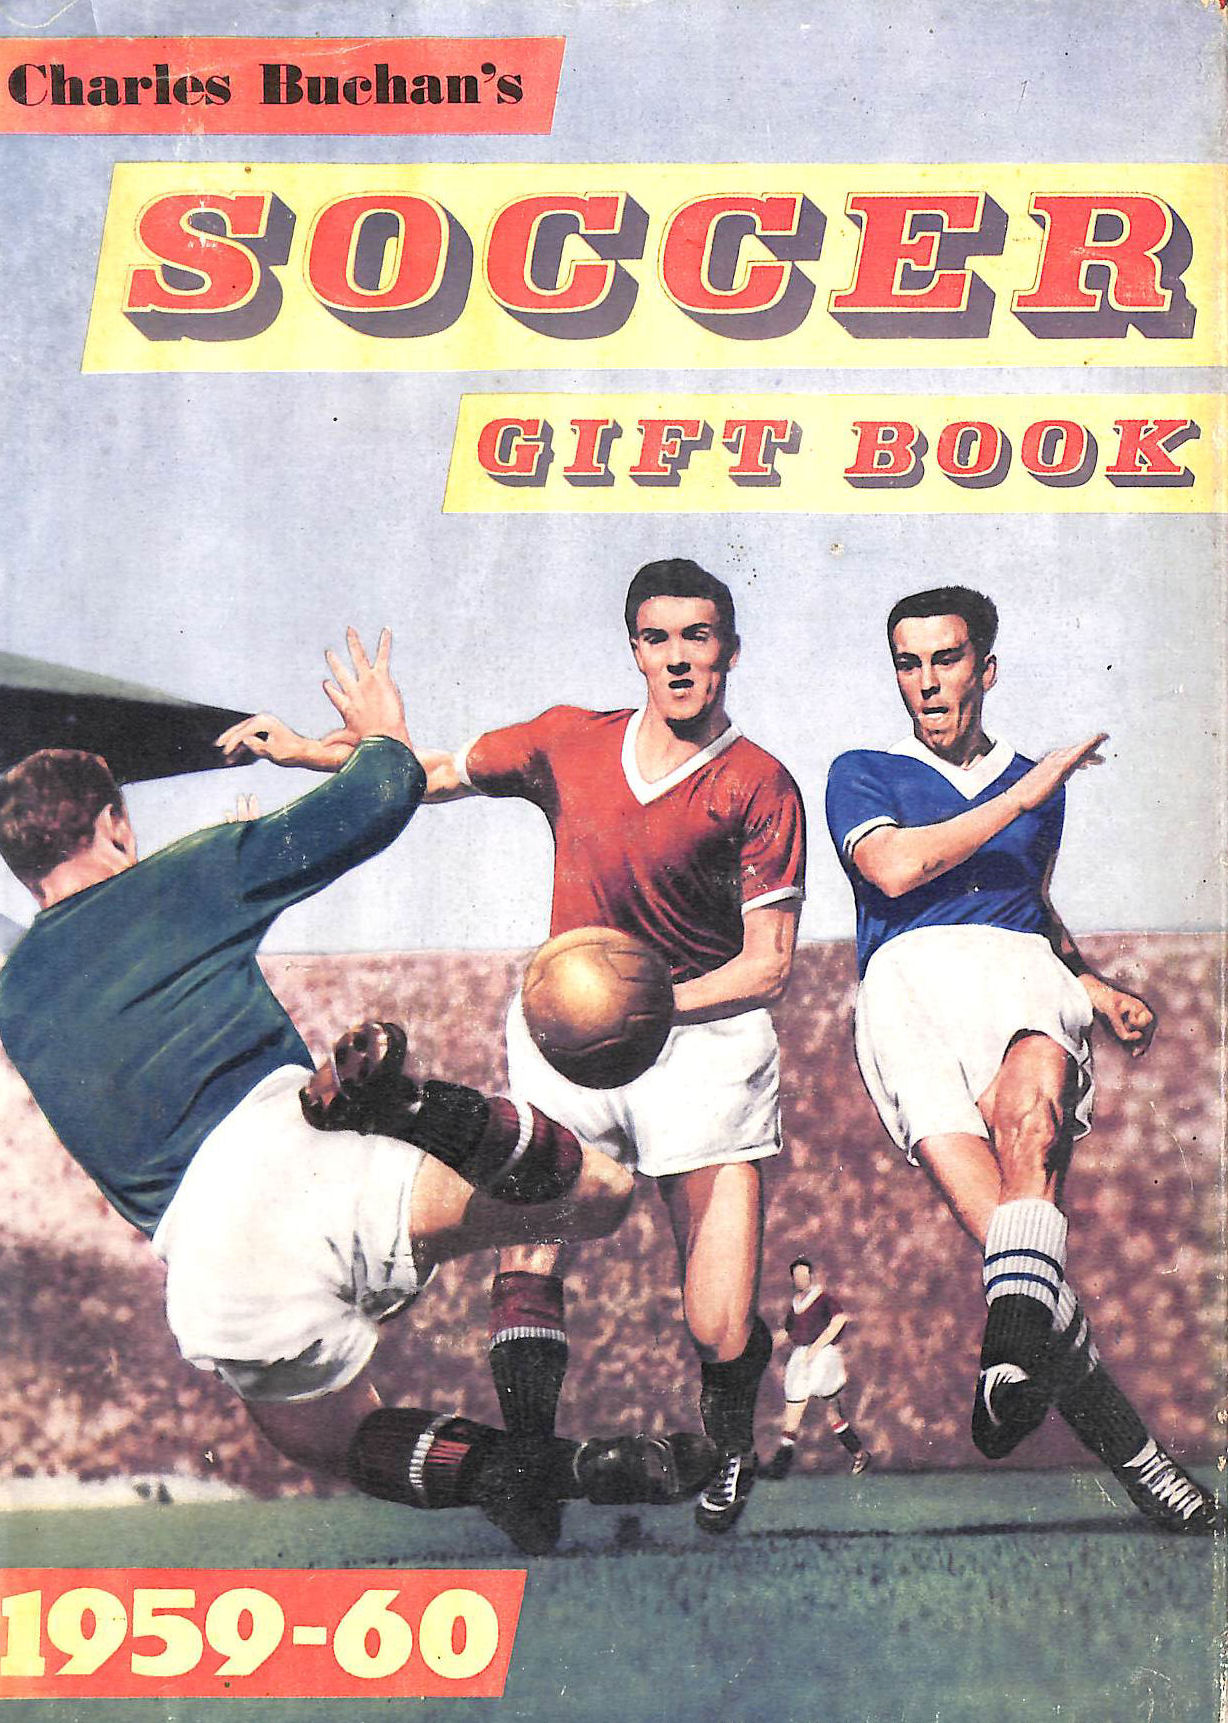 Image for CHARLES BUCHAN'S SOCCER GIFT BOOK 1959-60